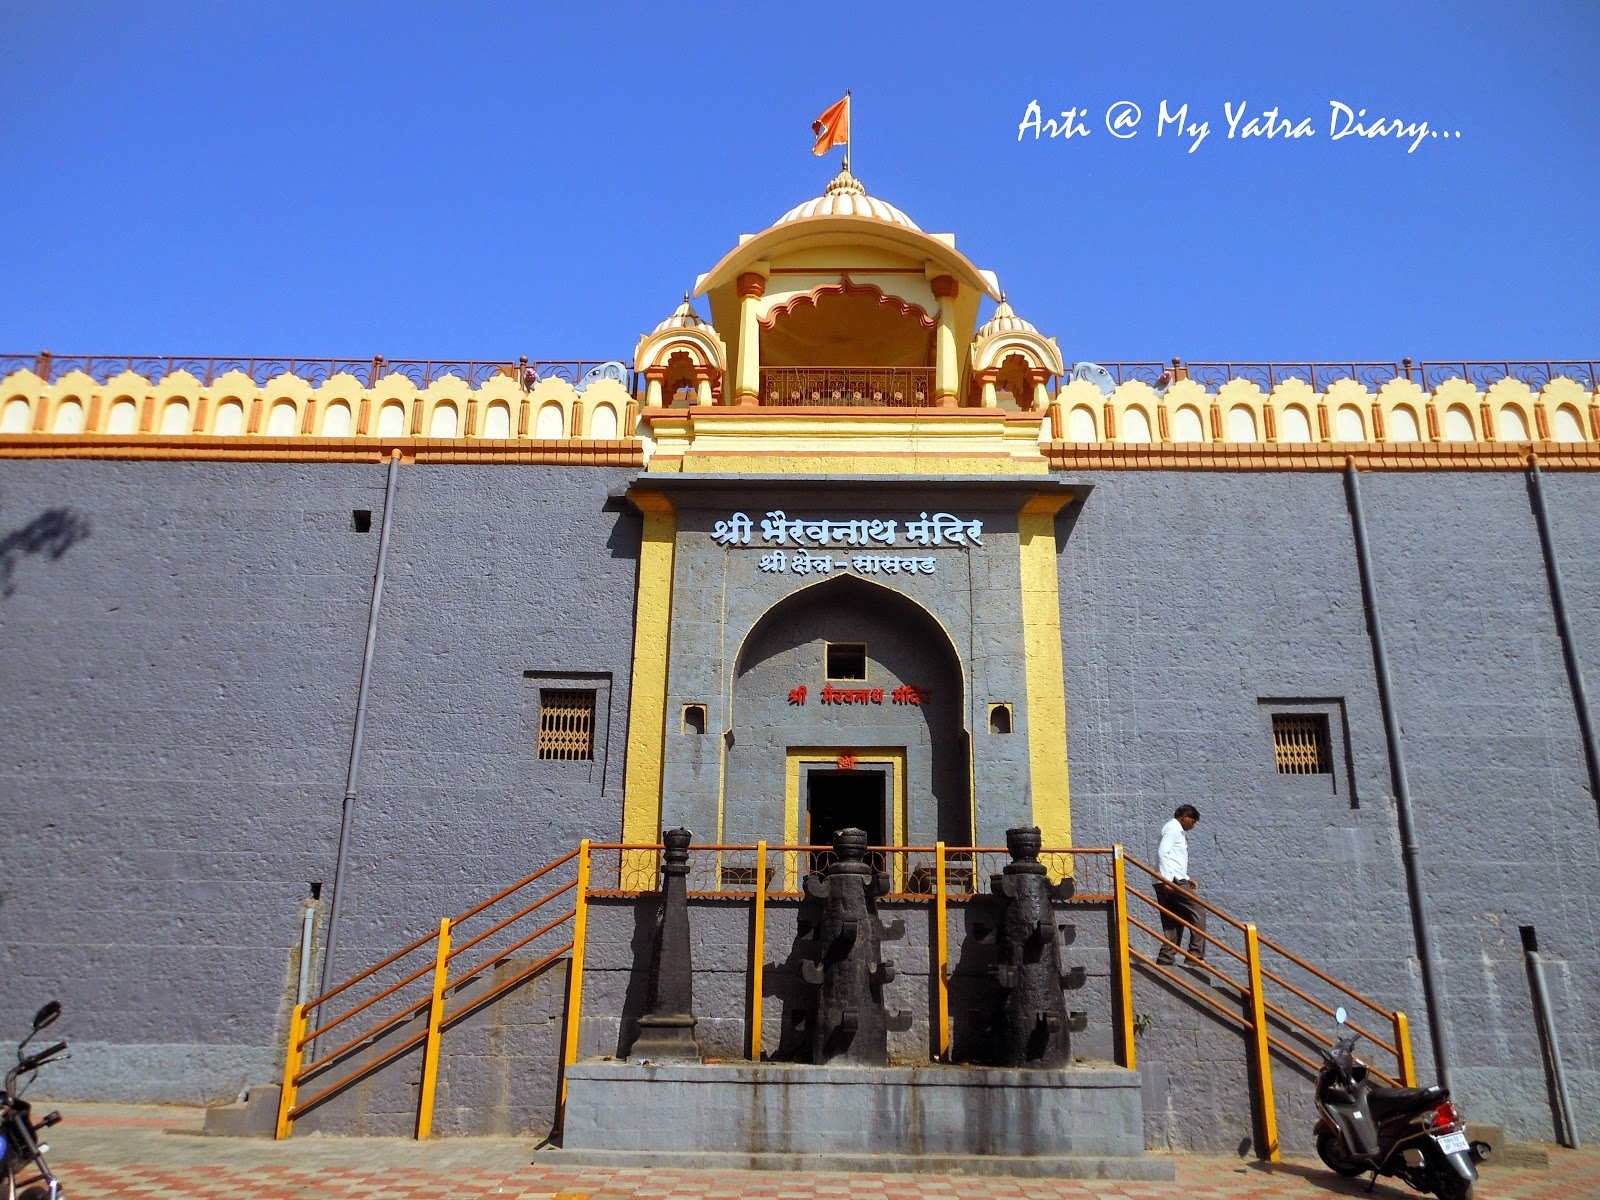 The magnificent citadel of Bhairavnath temple, Saswad, Pune, Maharashtra